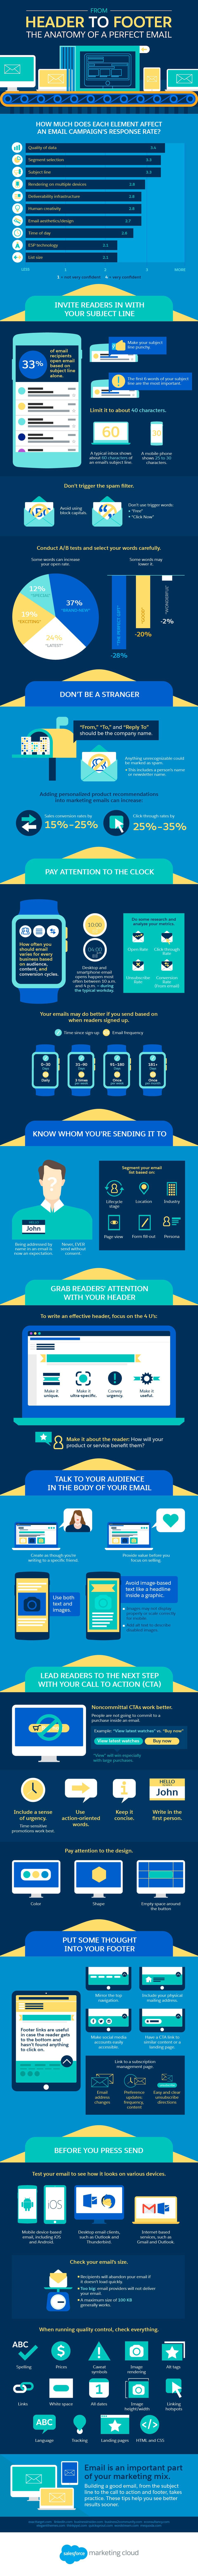 Email Campaign Tips infographic